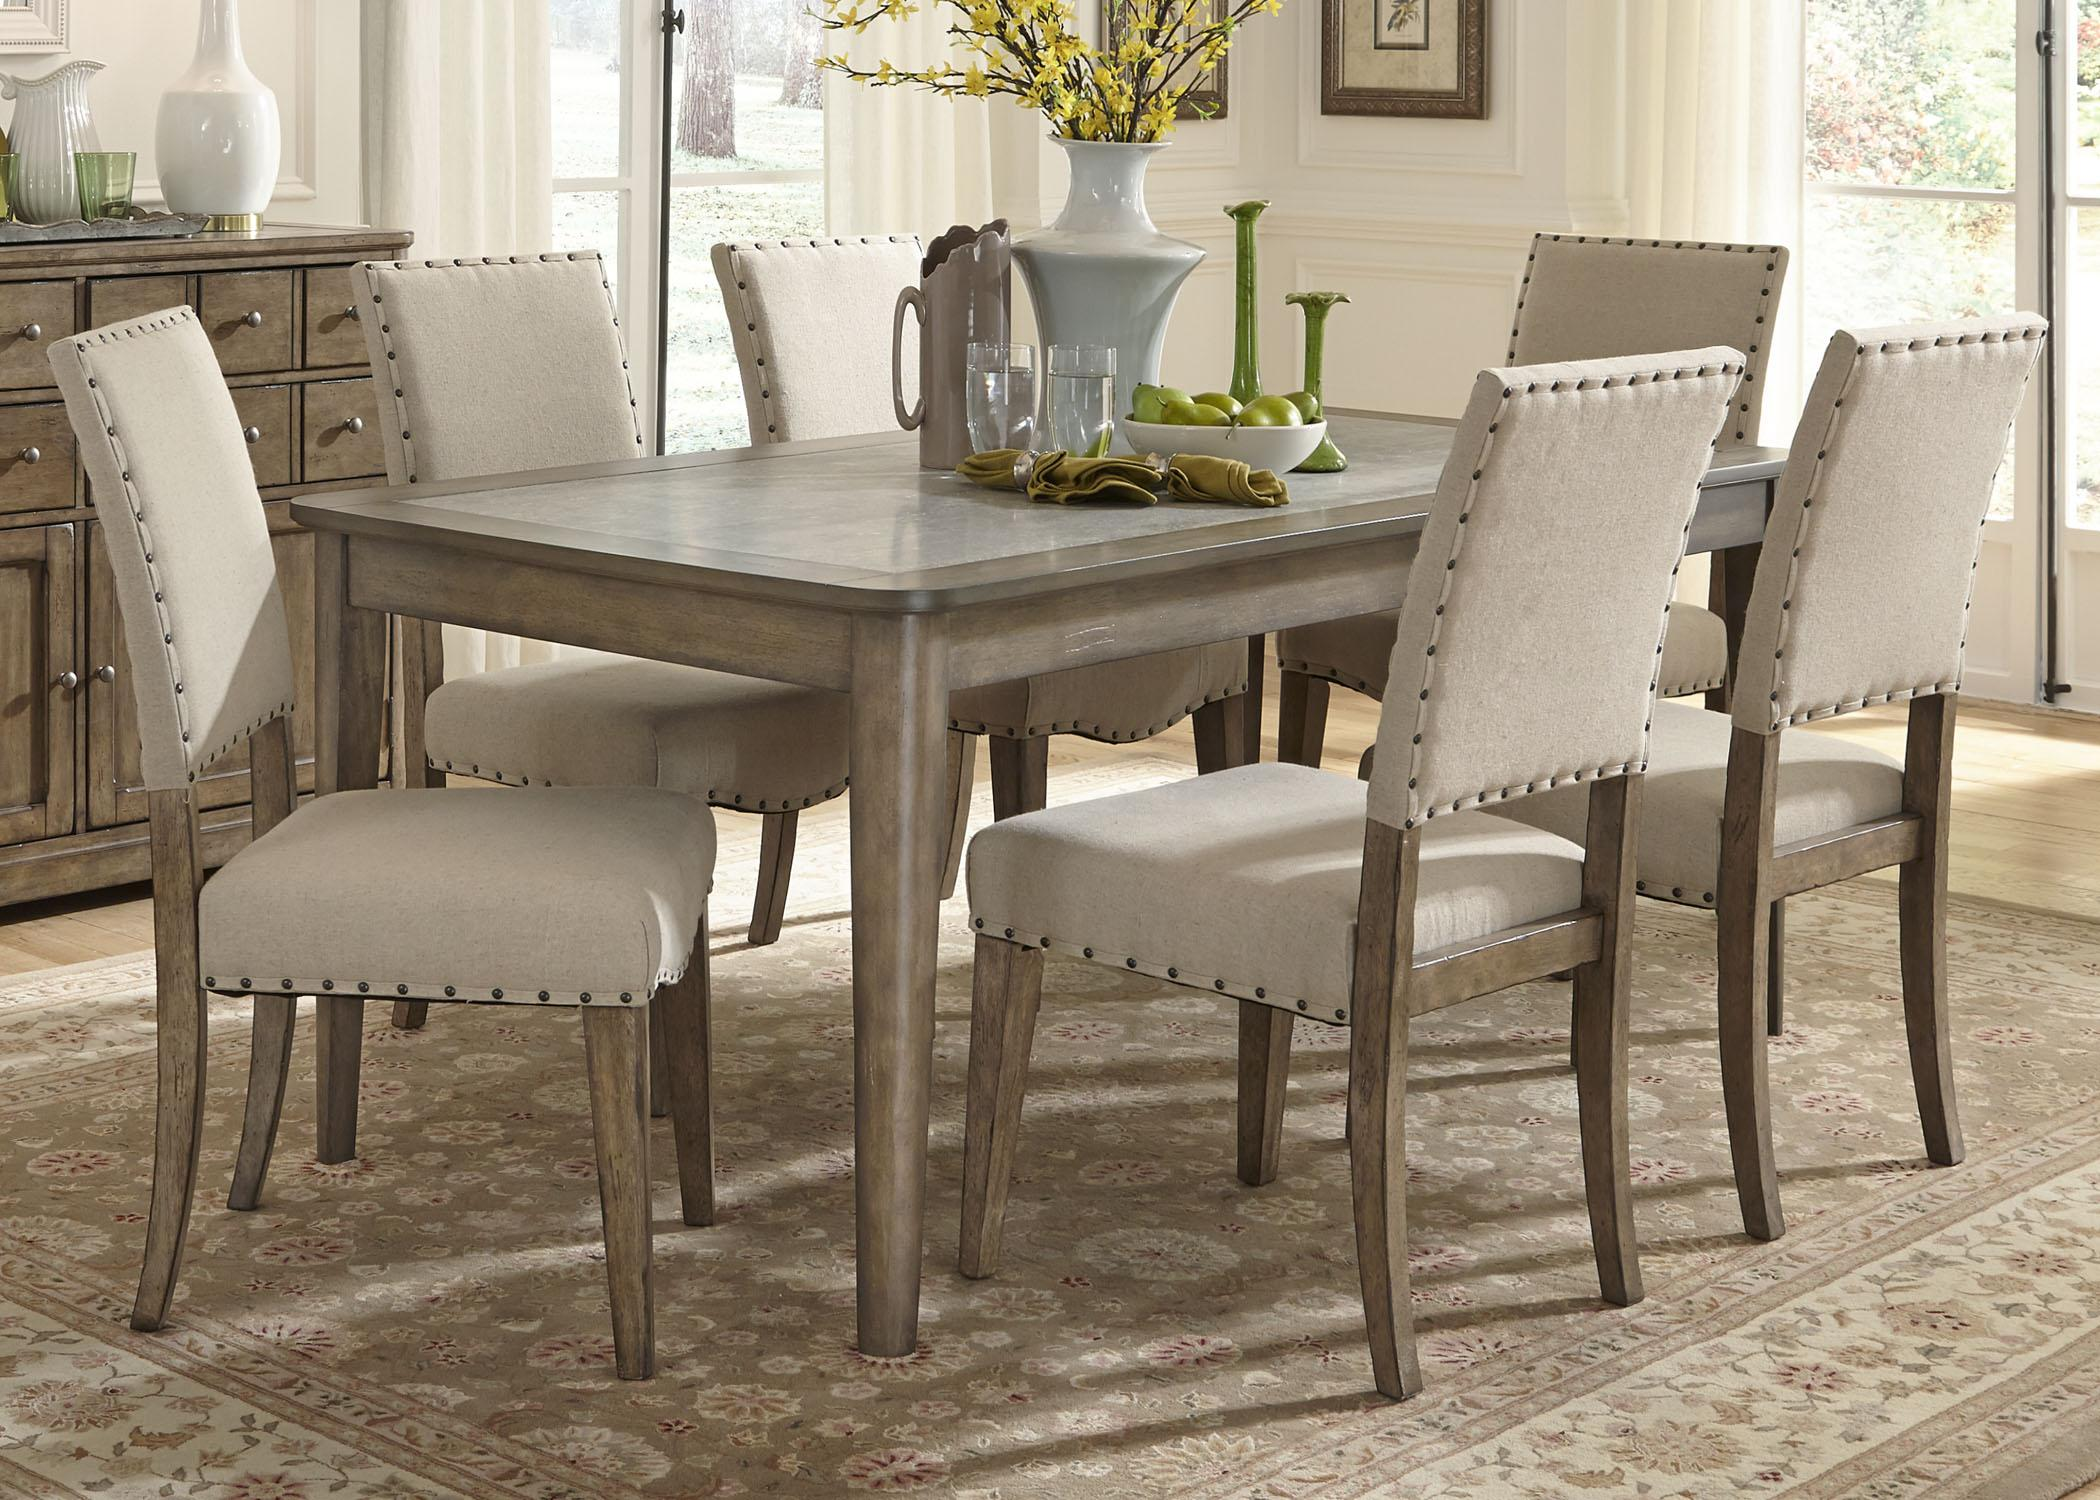 Liberty Furniture Weatherford 7 Piece Dining Table and Chairs Set - Item Number 645- & Liberty Furniture Weatherford Casual Rustic 7 Piece Dining Table and ...